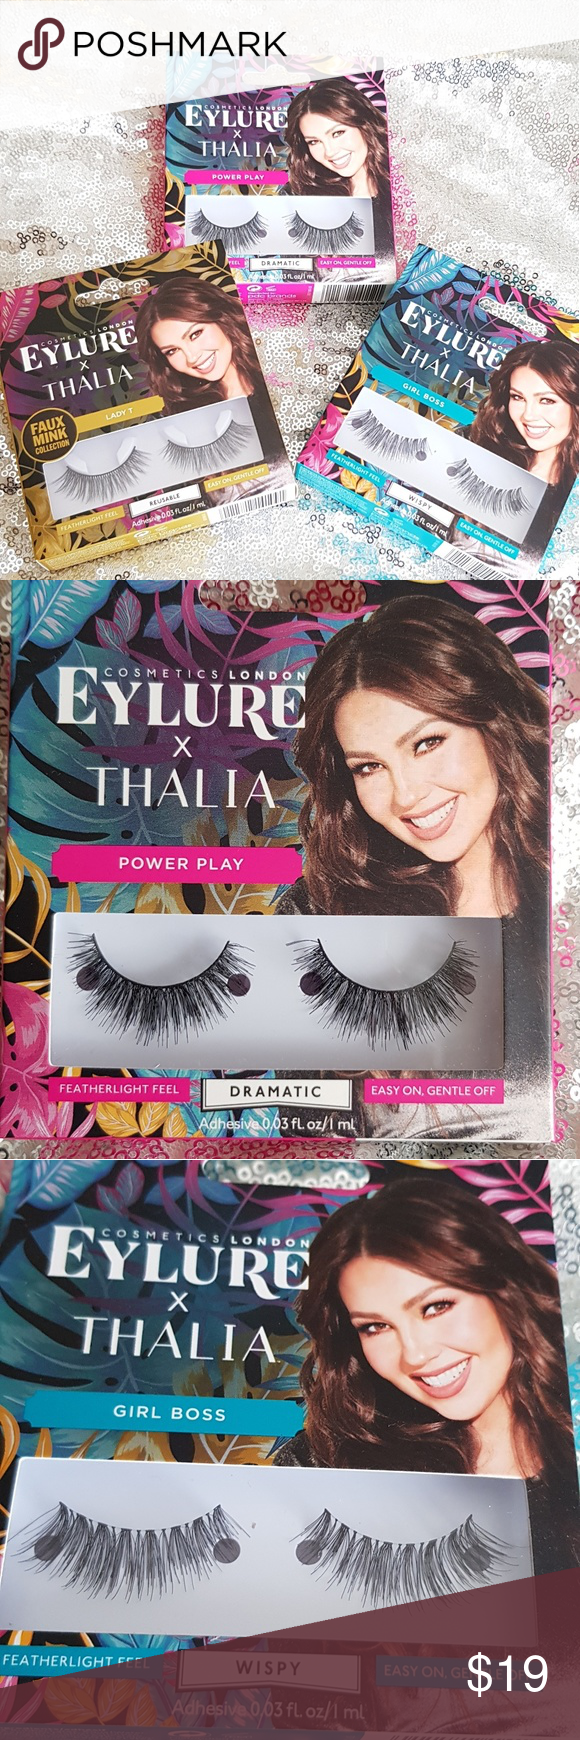 7e2f4ccd67c 😍Eylure X Thalia Lashes Switch up your look with these easy-to-apply  lashes. Includes THREE packs of lashes as seen in picture #1. ❌❌Price is  FIRM.